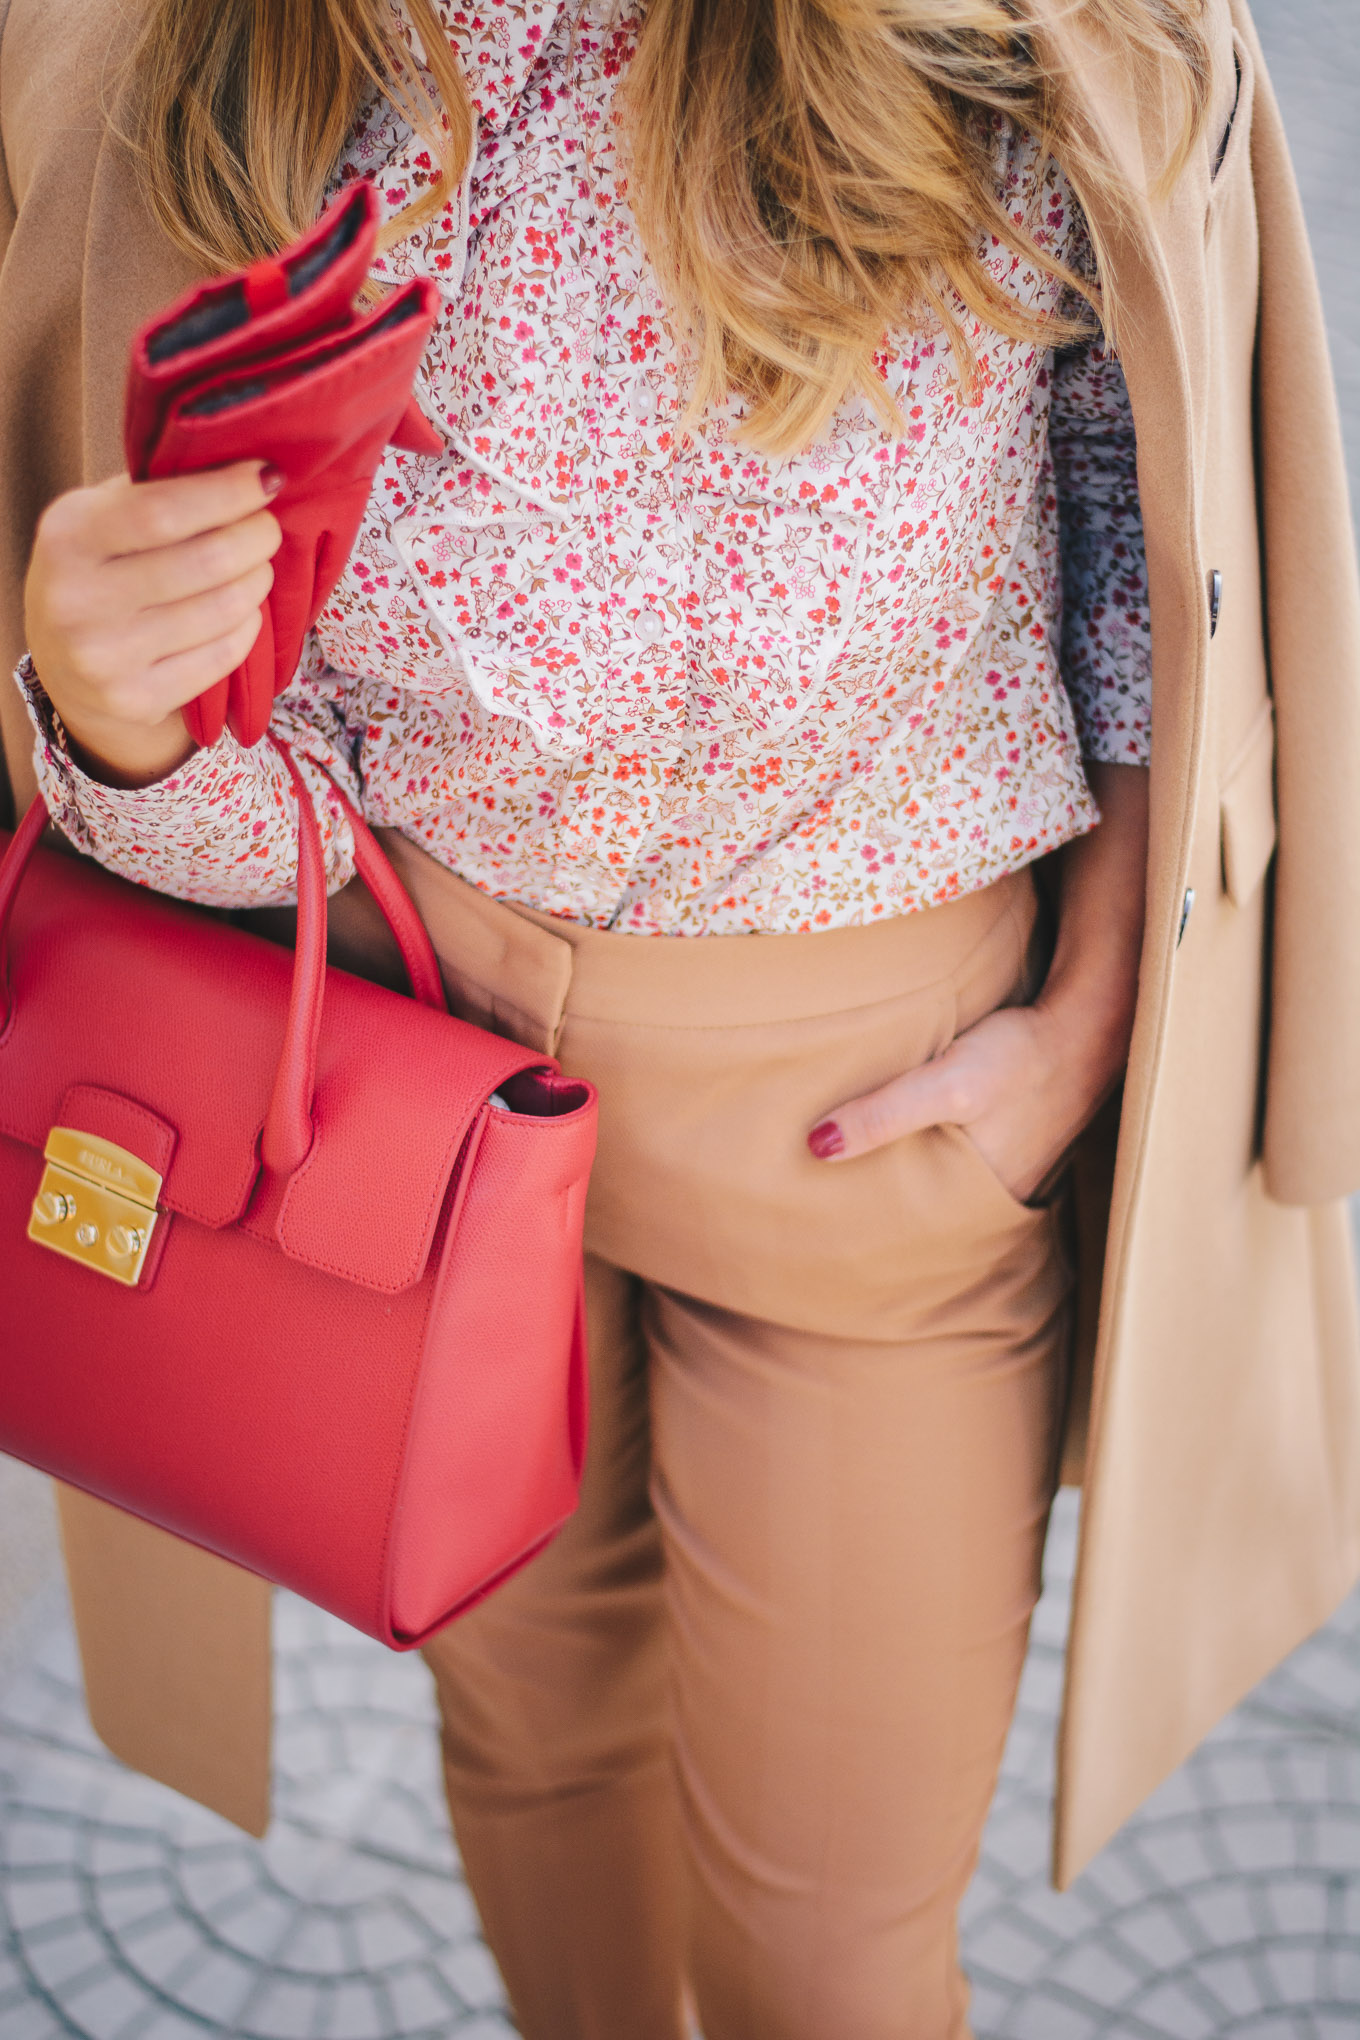 Favorite way to style red benetton